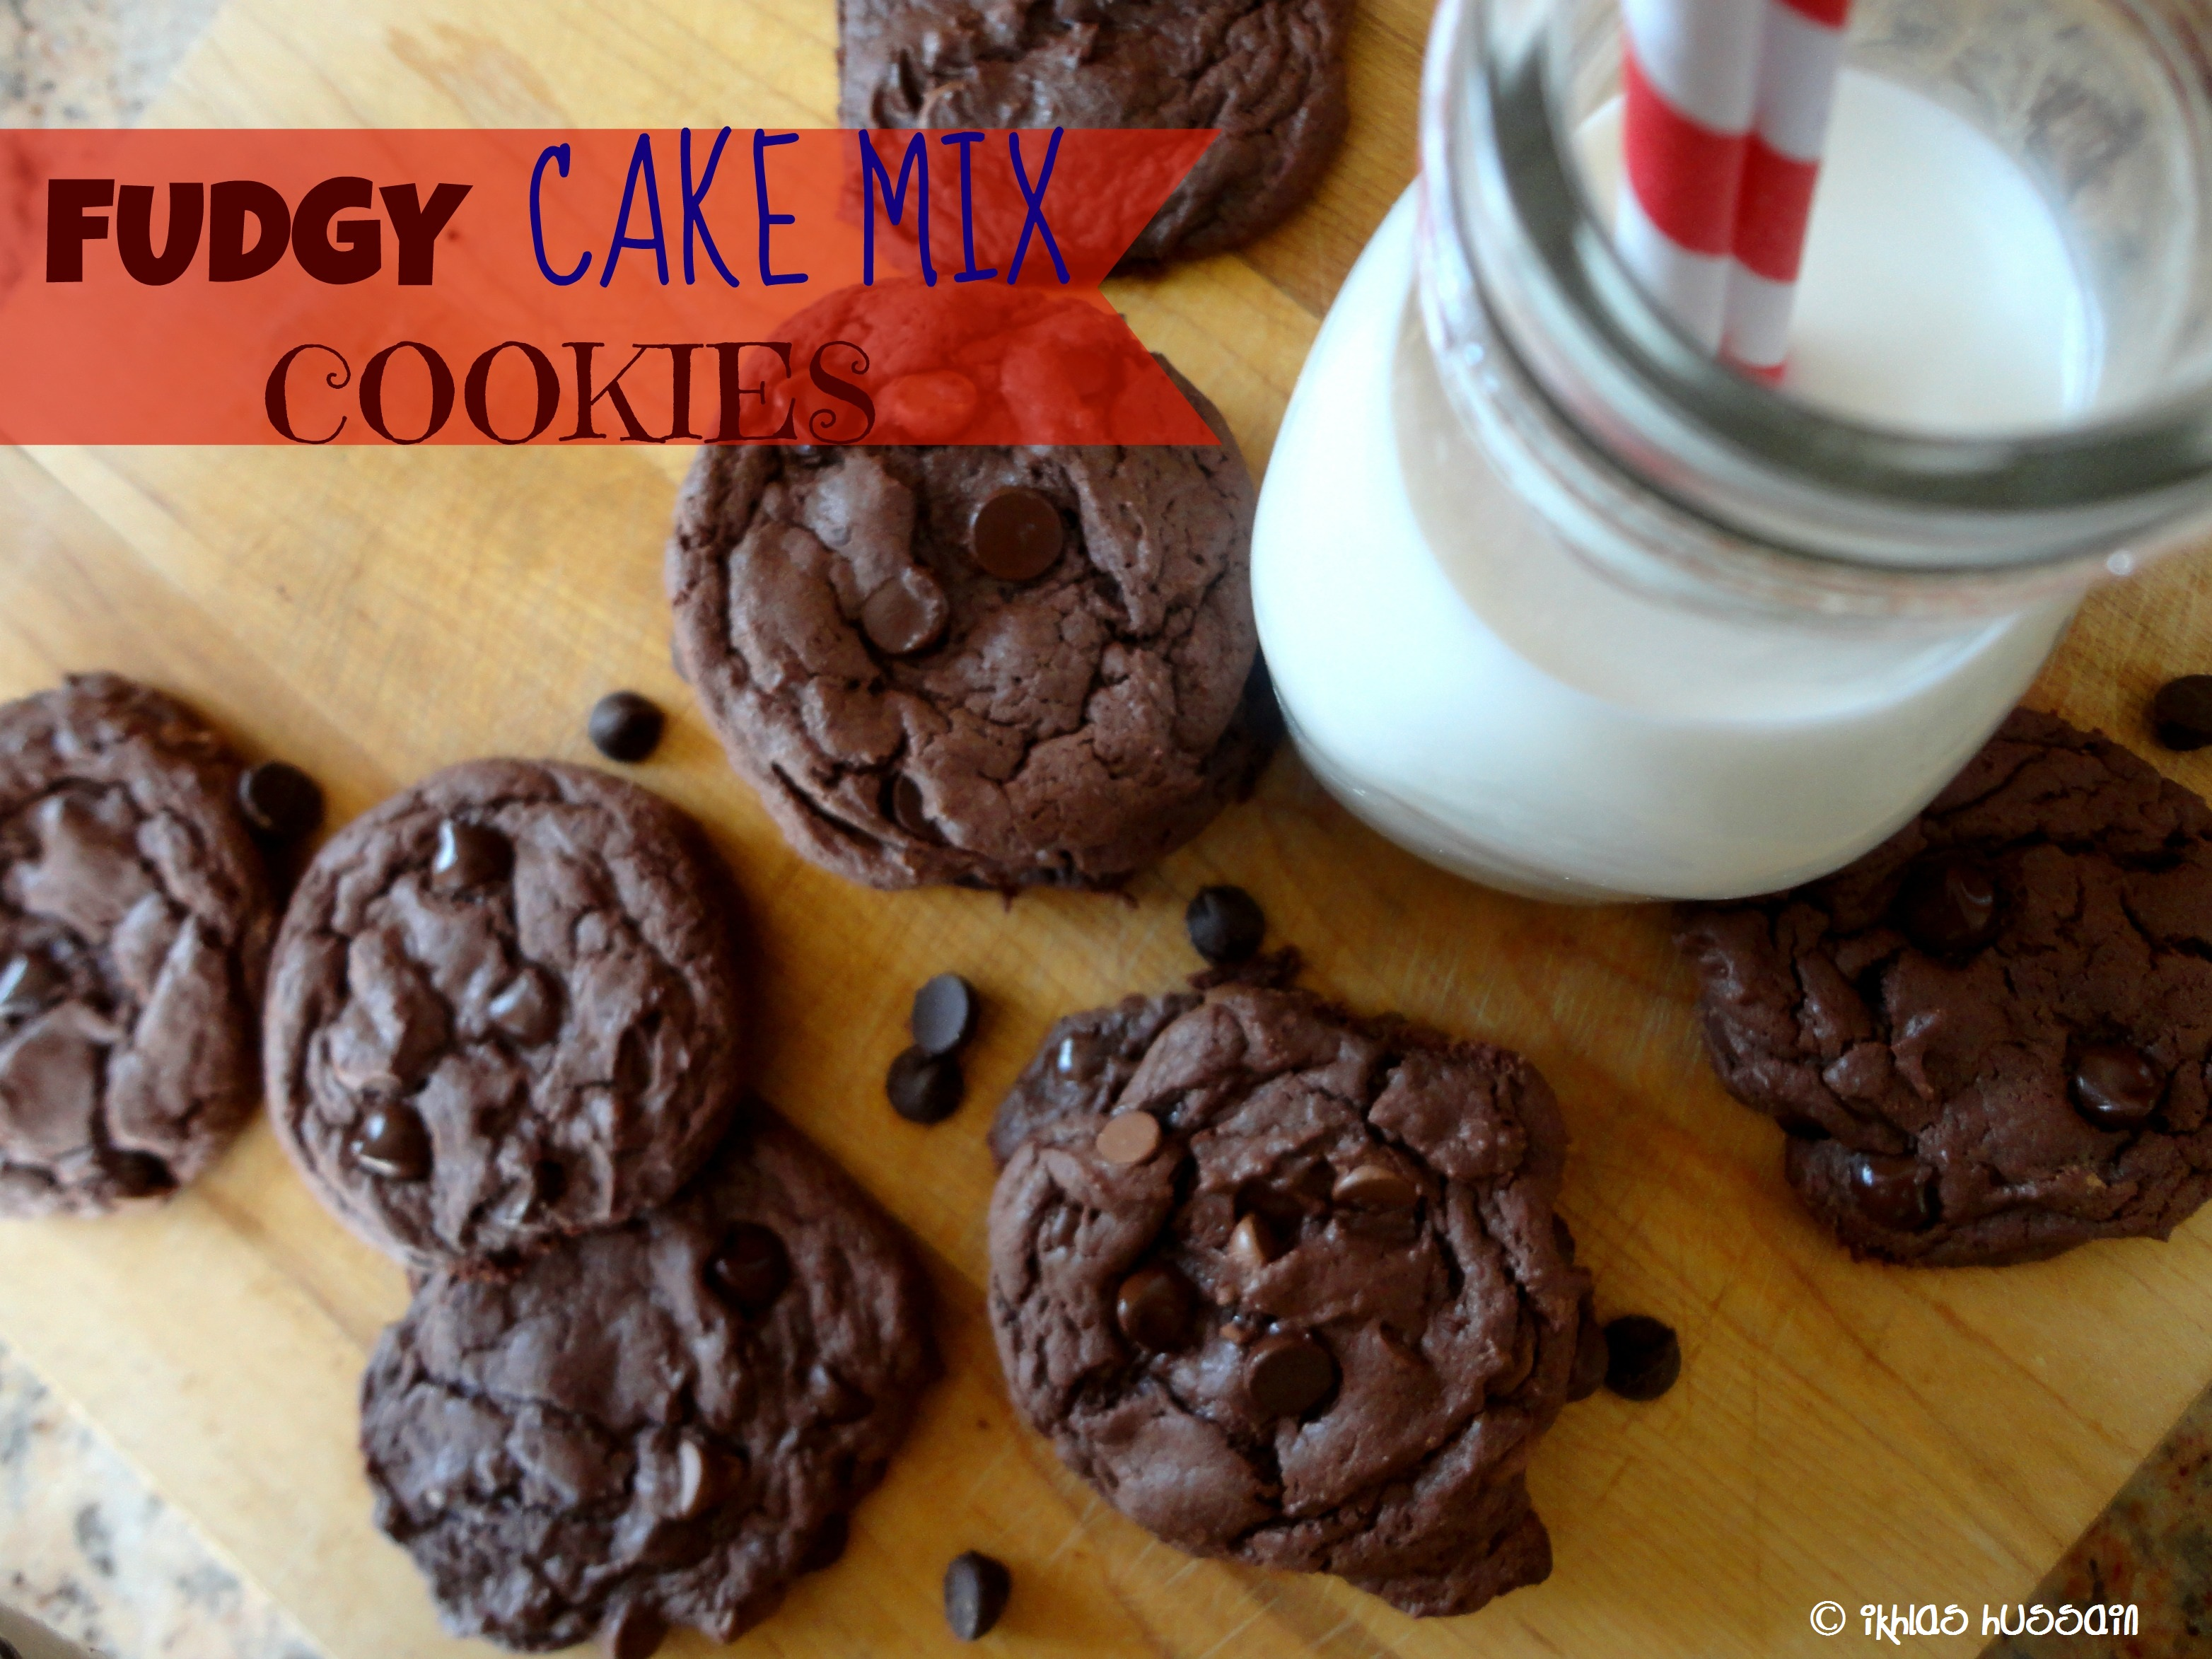 How To Make Gingerbread Cookies From Gluten Free Cake Mix